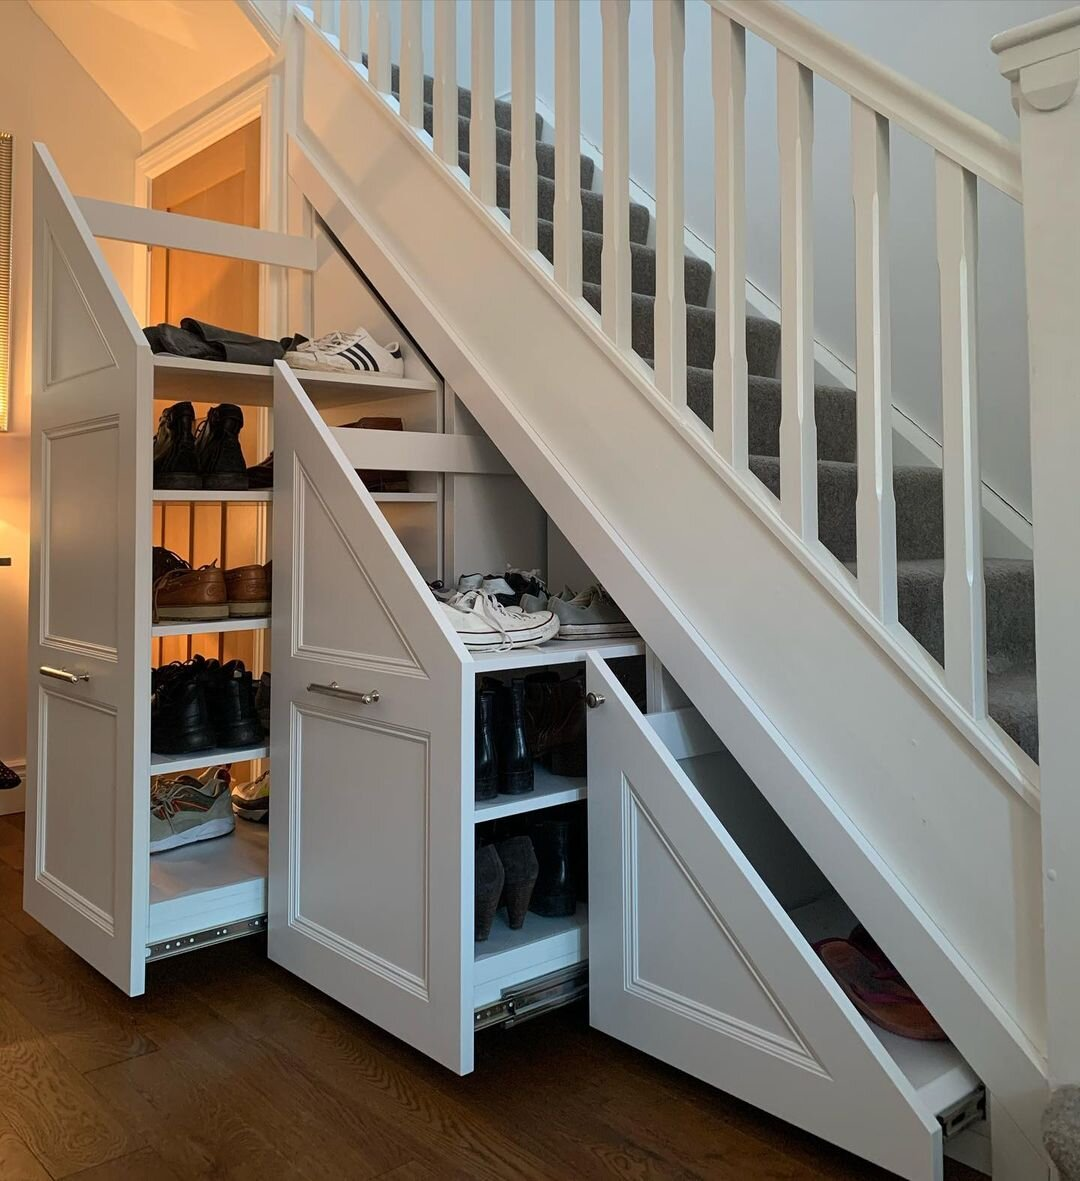 10 Clever Under Stair Storage Ideas You Re Going To Love Fifi Mcgee